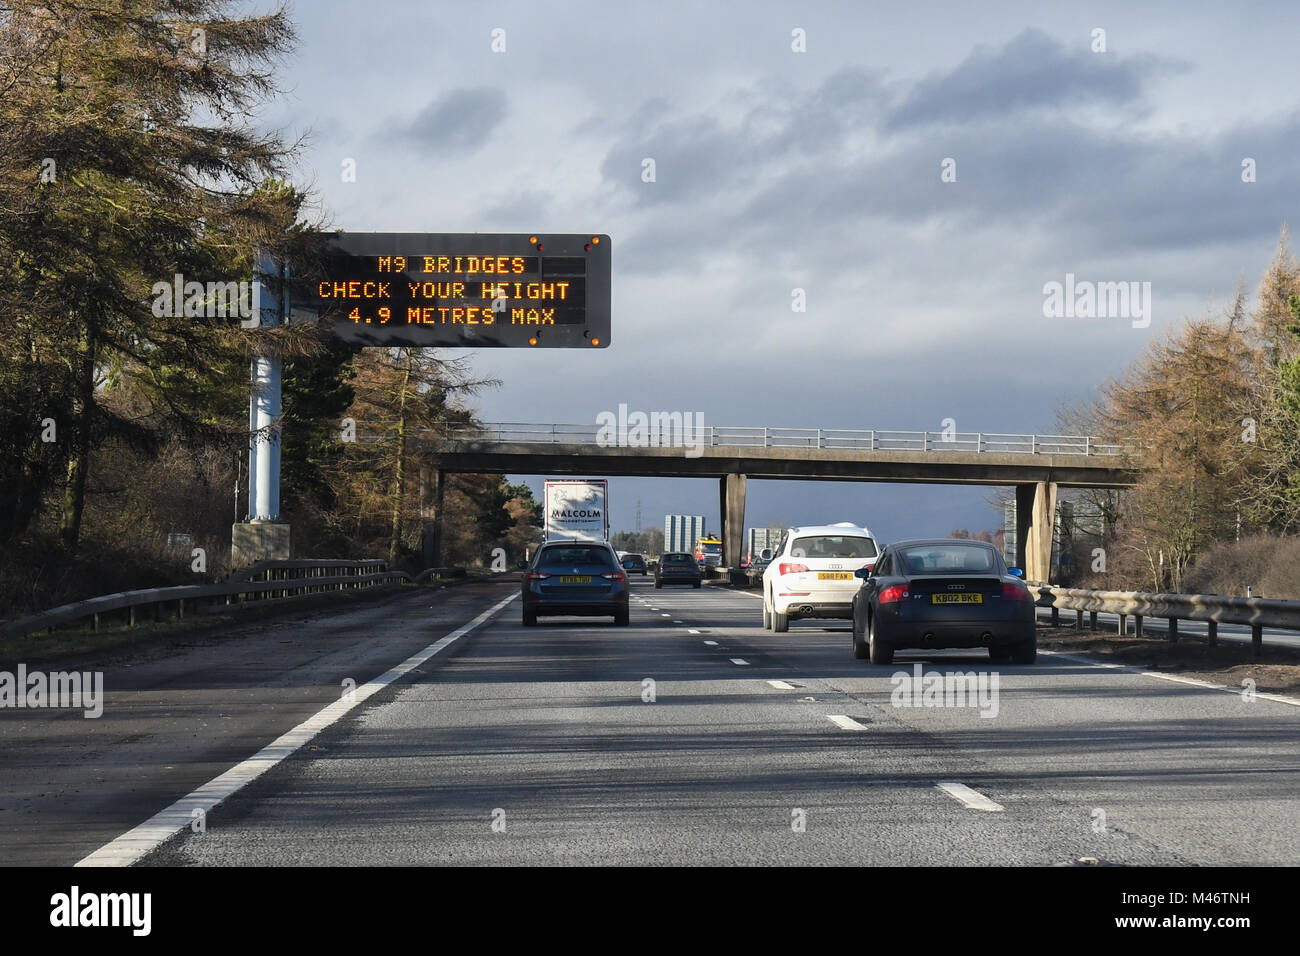 motorway bridge height warning sign on M9 motorway, Scotland, UK - Stock Image